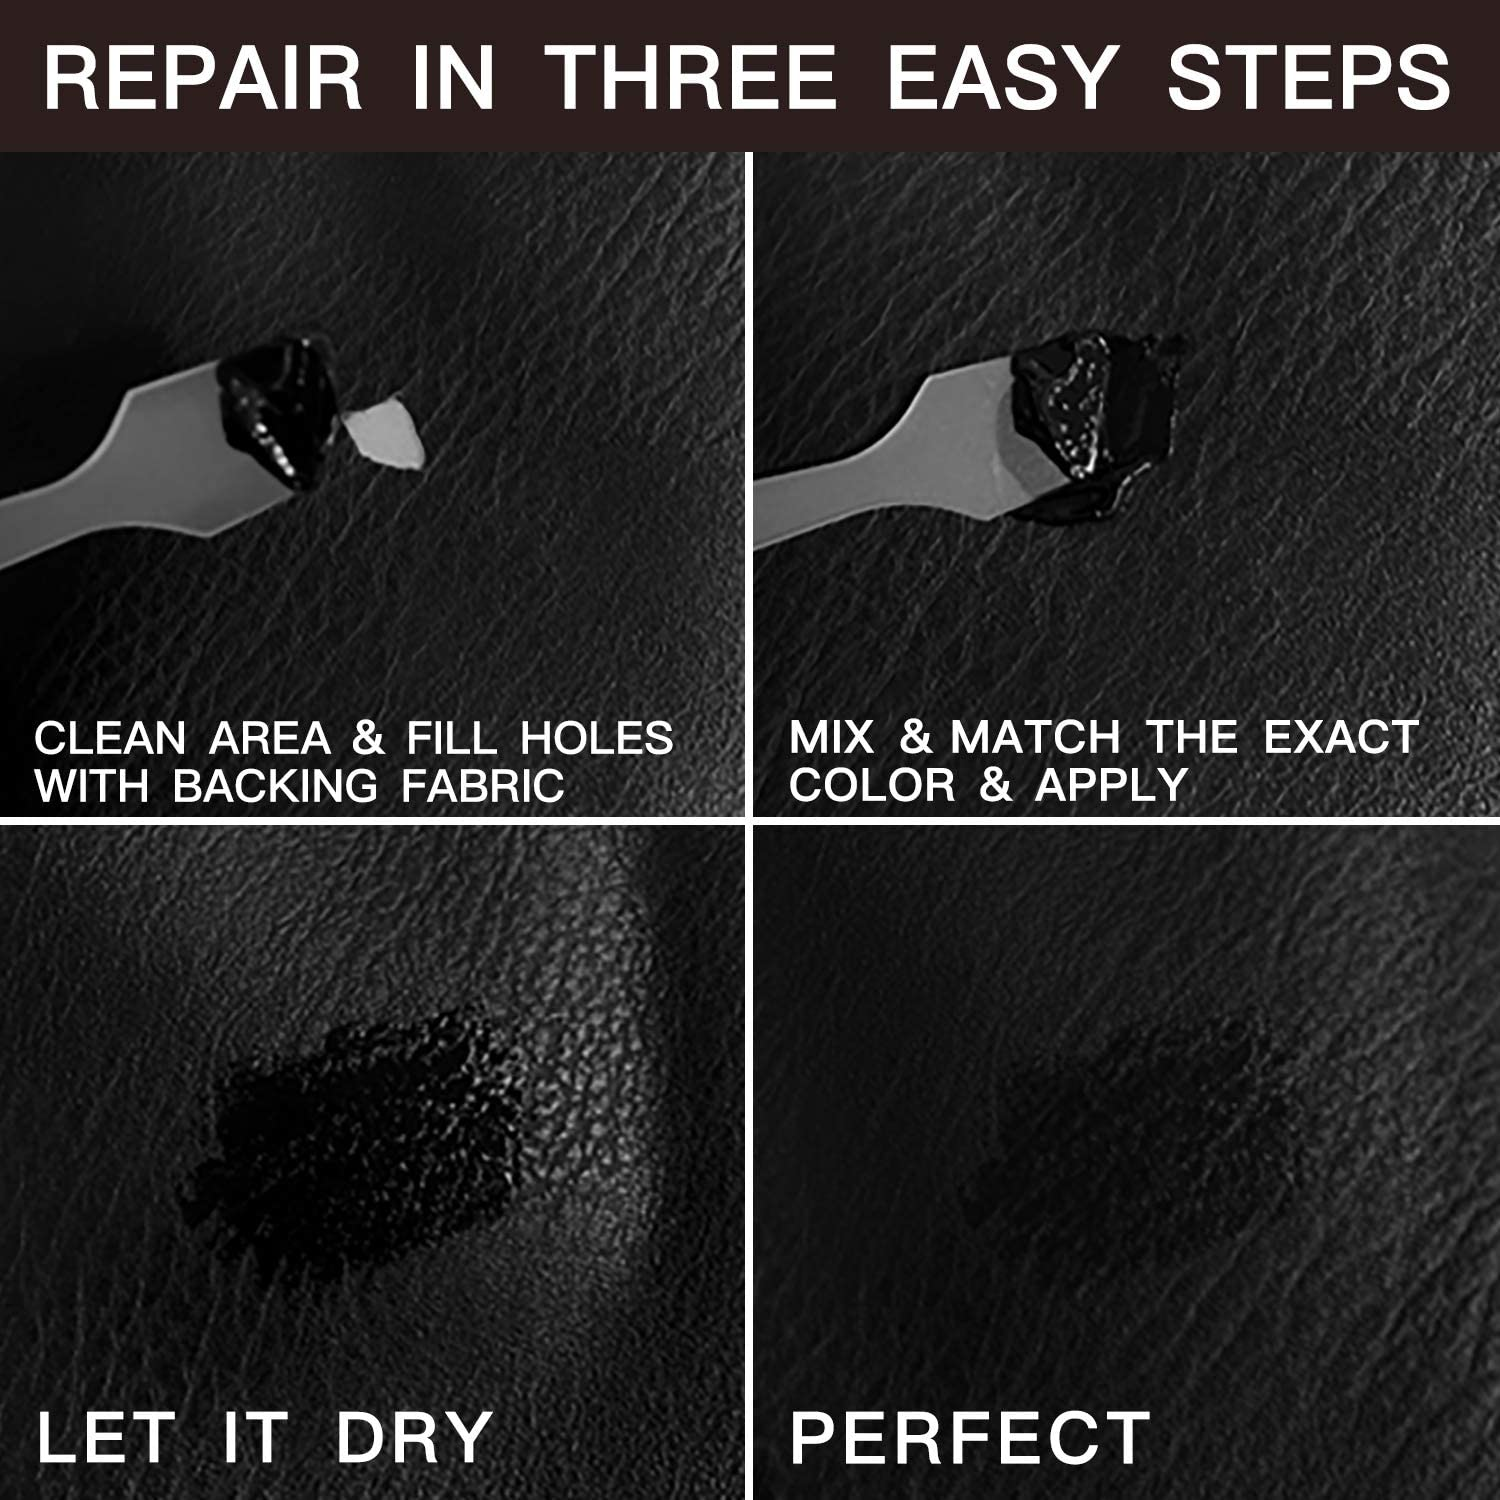 Repair /& Resto Italian Sofa Jacket Genuine Belt Bycast Car Seats Purse Restorer of Your Furniture Vinyl and Leather Repair Kit PU Pleather |No Heat Required Bonded Shoes